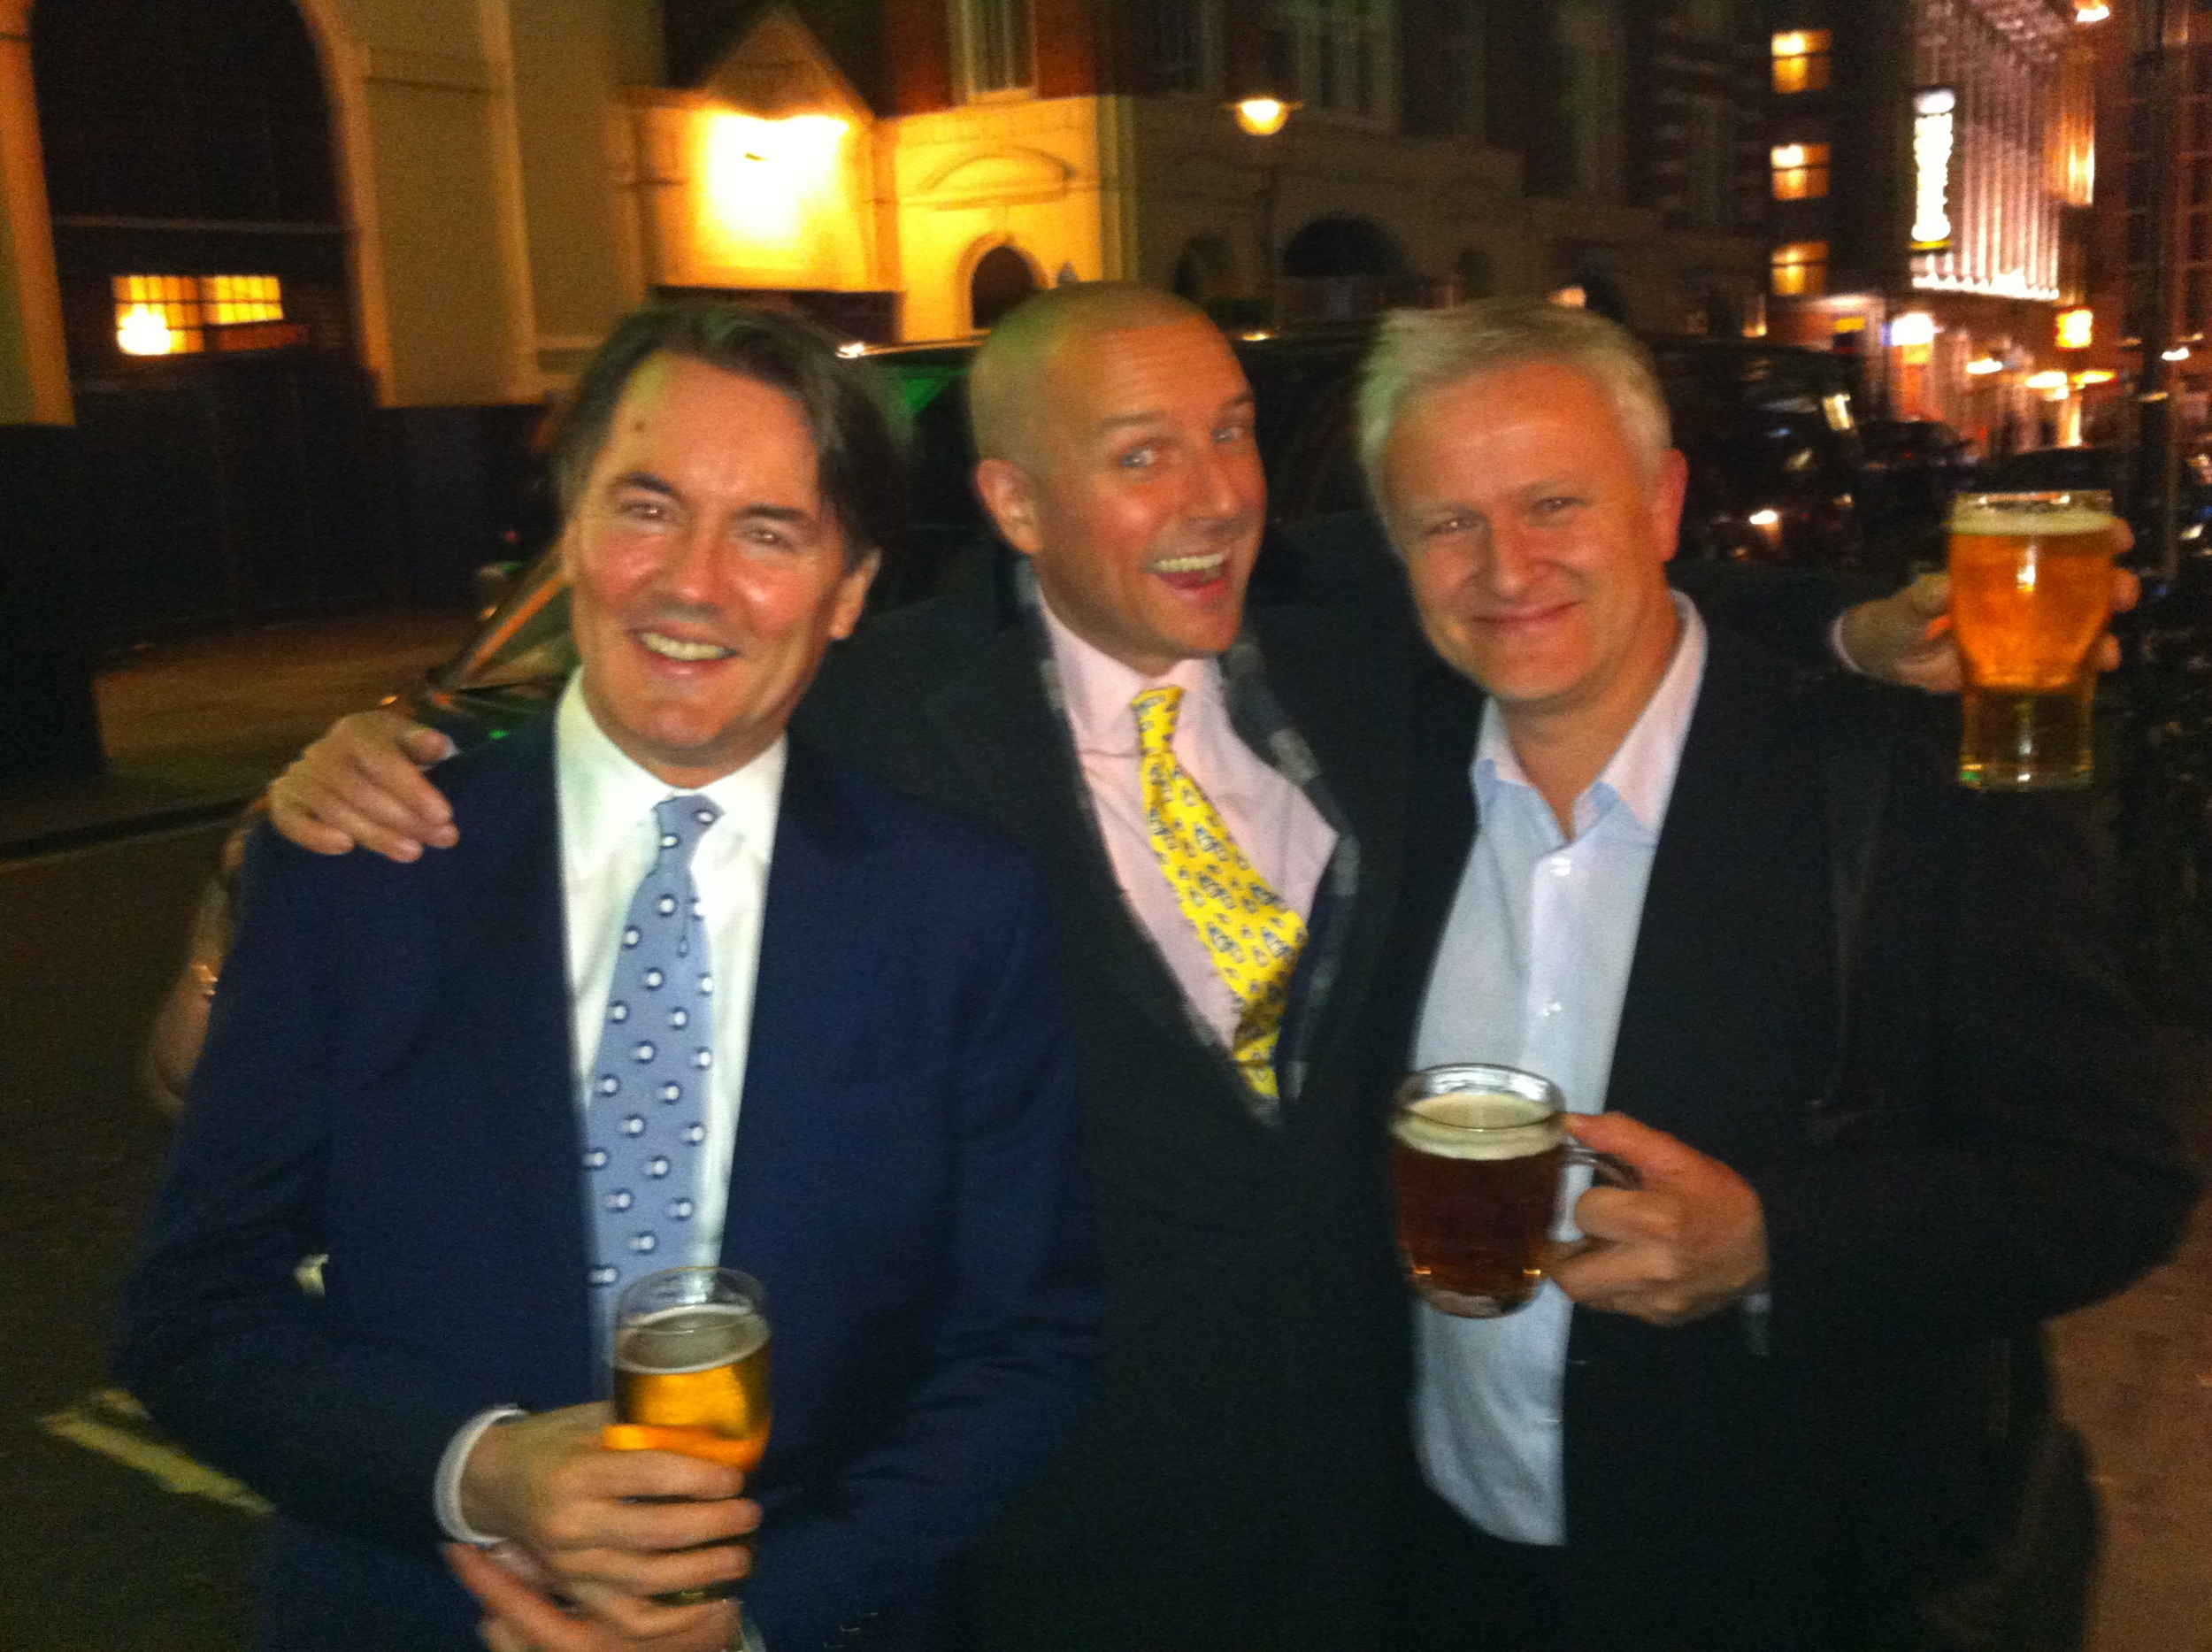 Out on the town in London with  Mark Markham  and  Mike Lovatt . Where's your tie, Lovatt?!